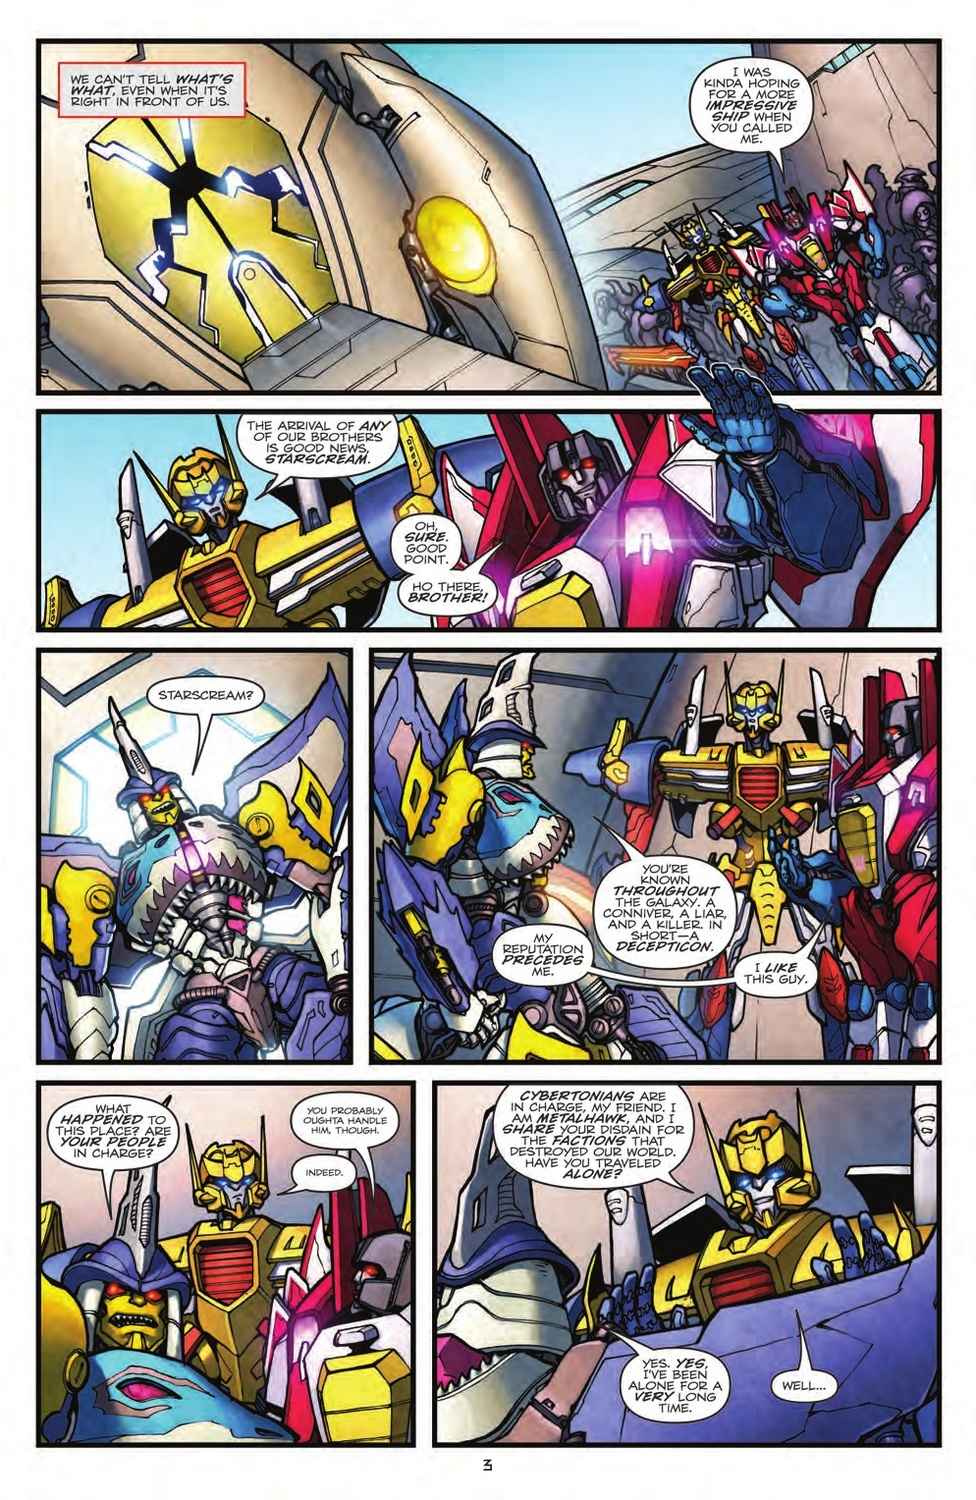 transformers-comics-robots-in-disguise-issue-5-page-3 Transformers Robots in Disguise #5